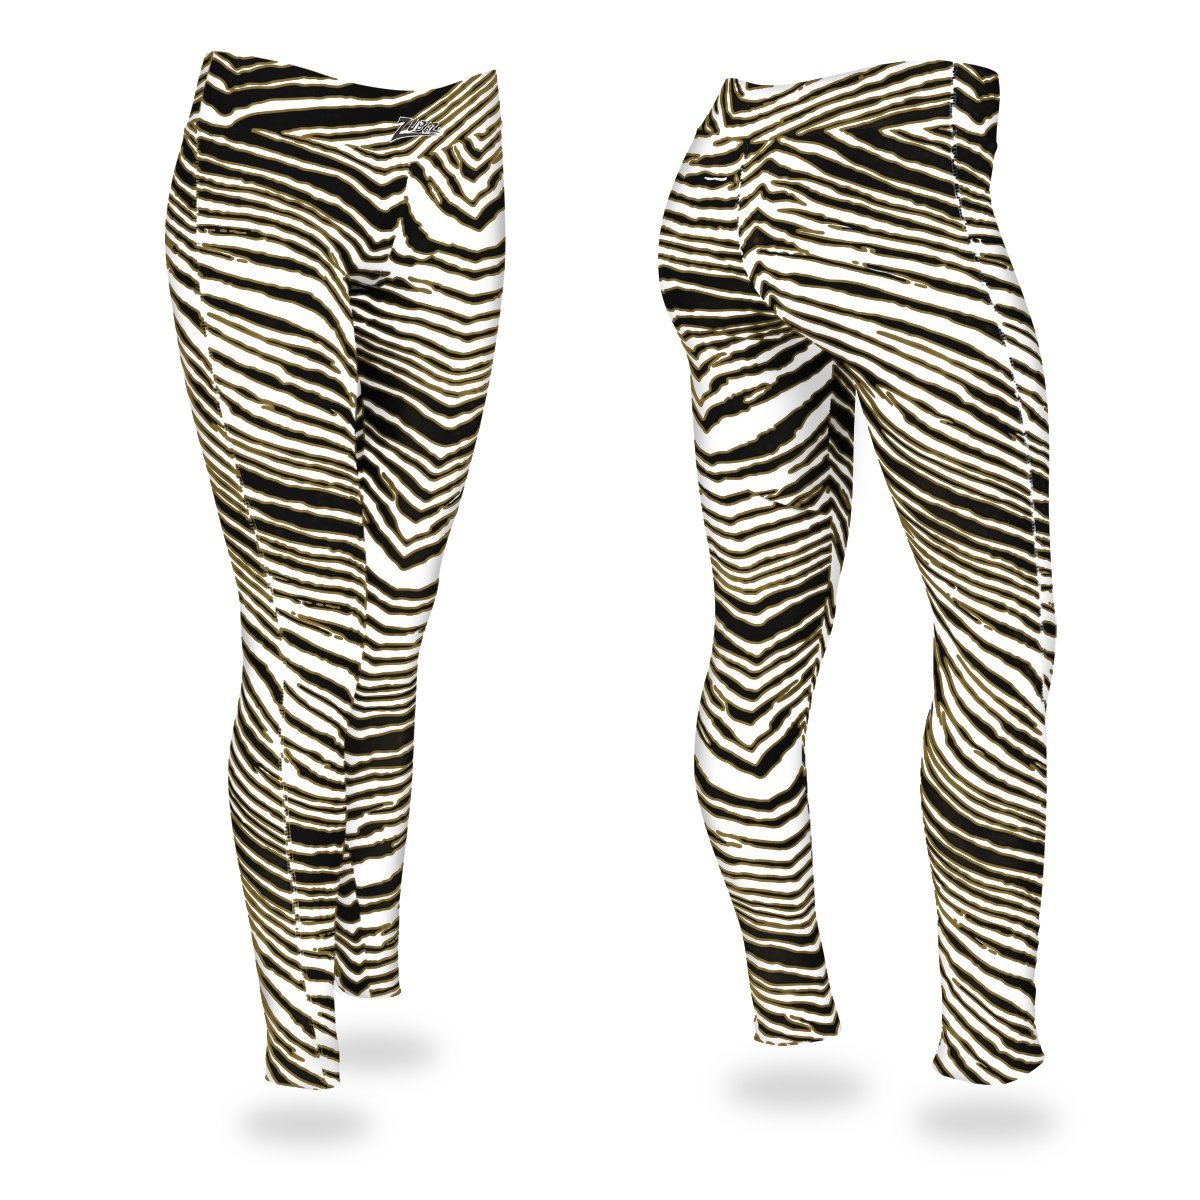 Zubaz Zebra Print Slim Fit Trousers For Ladies-Black/Metallic Gold-NA9257